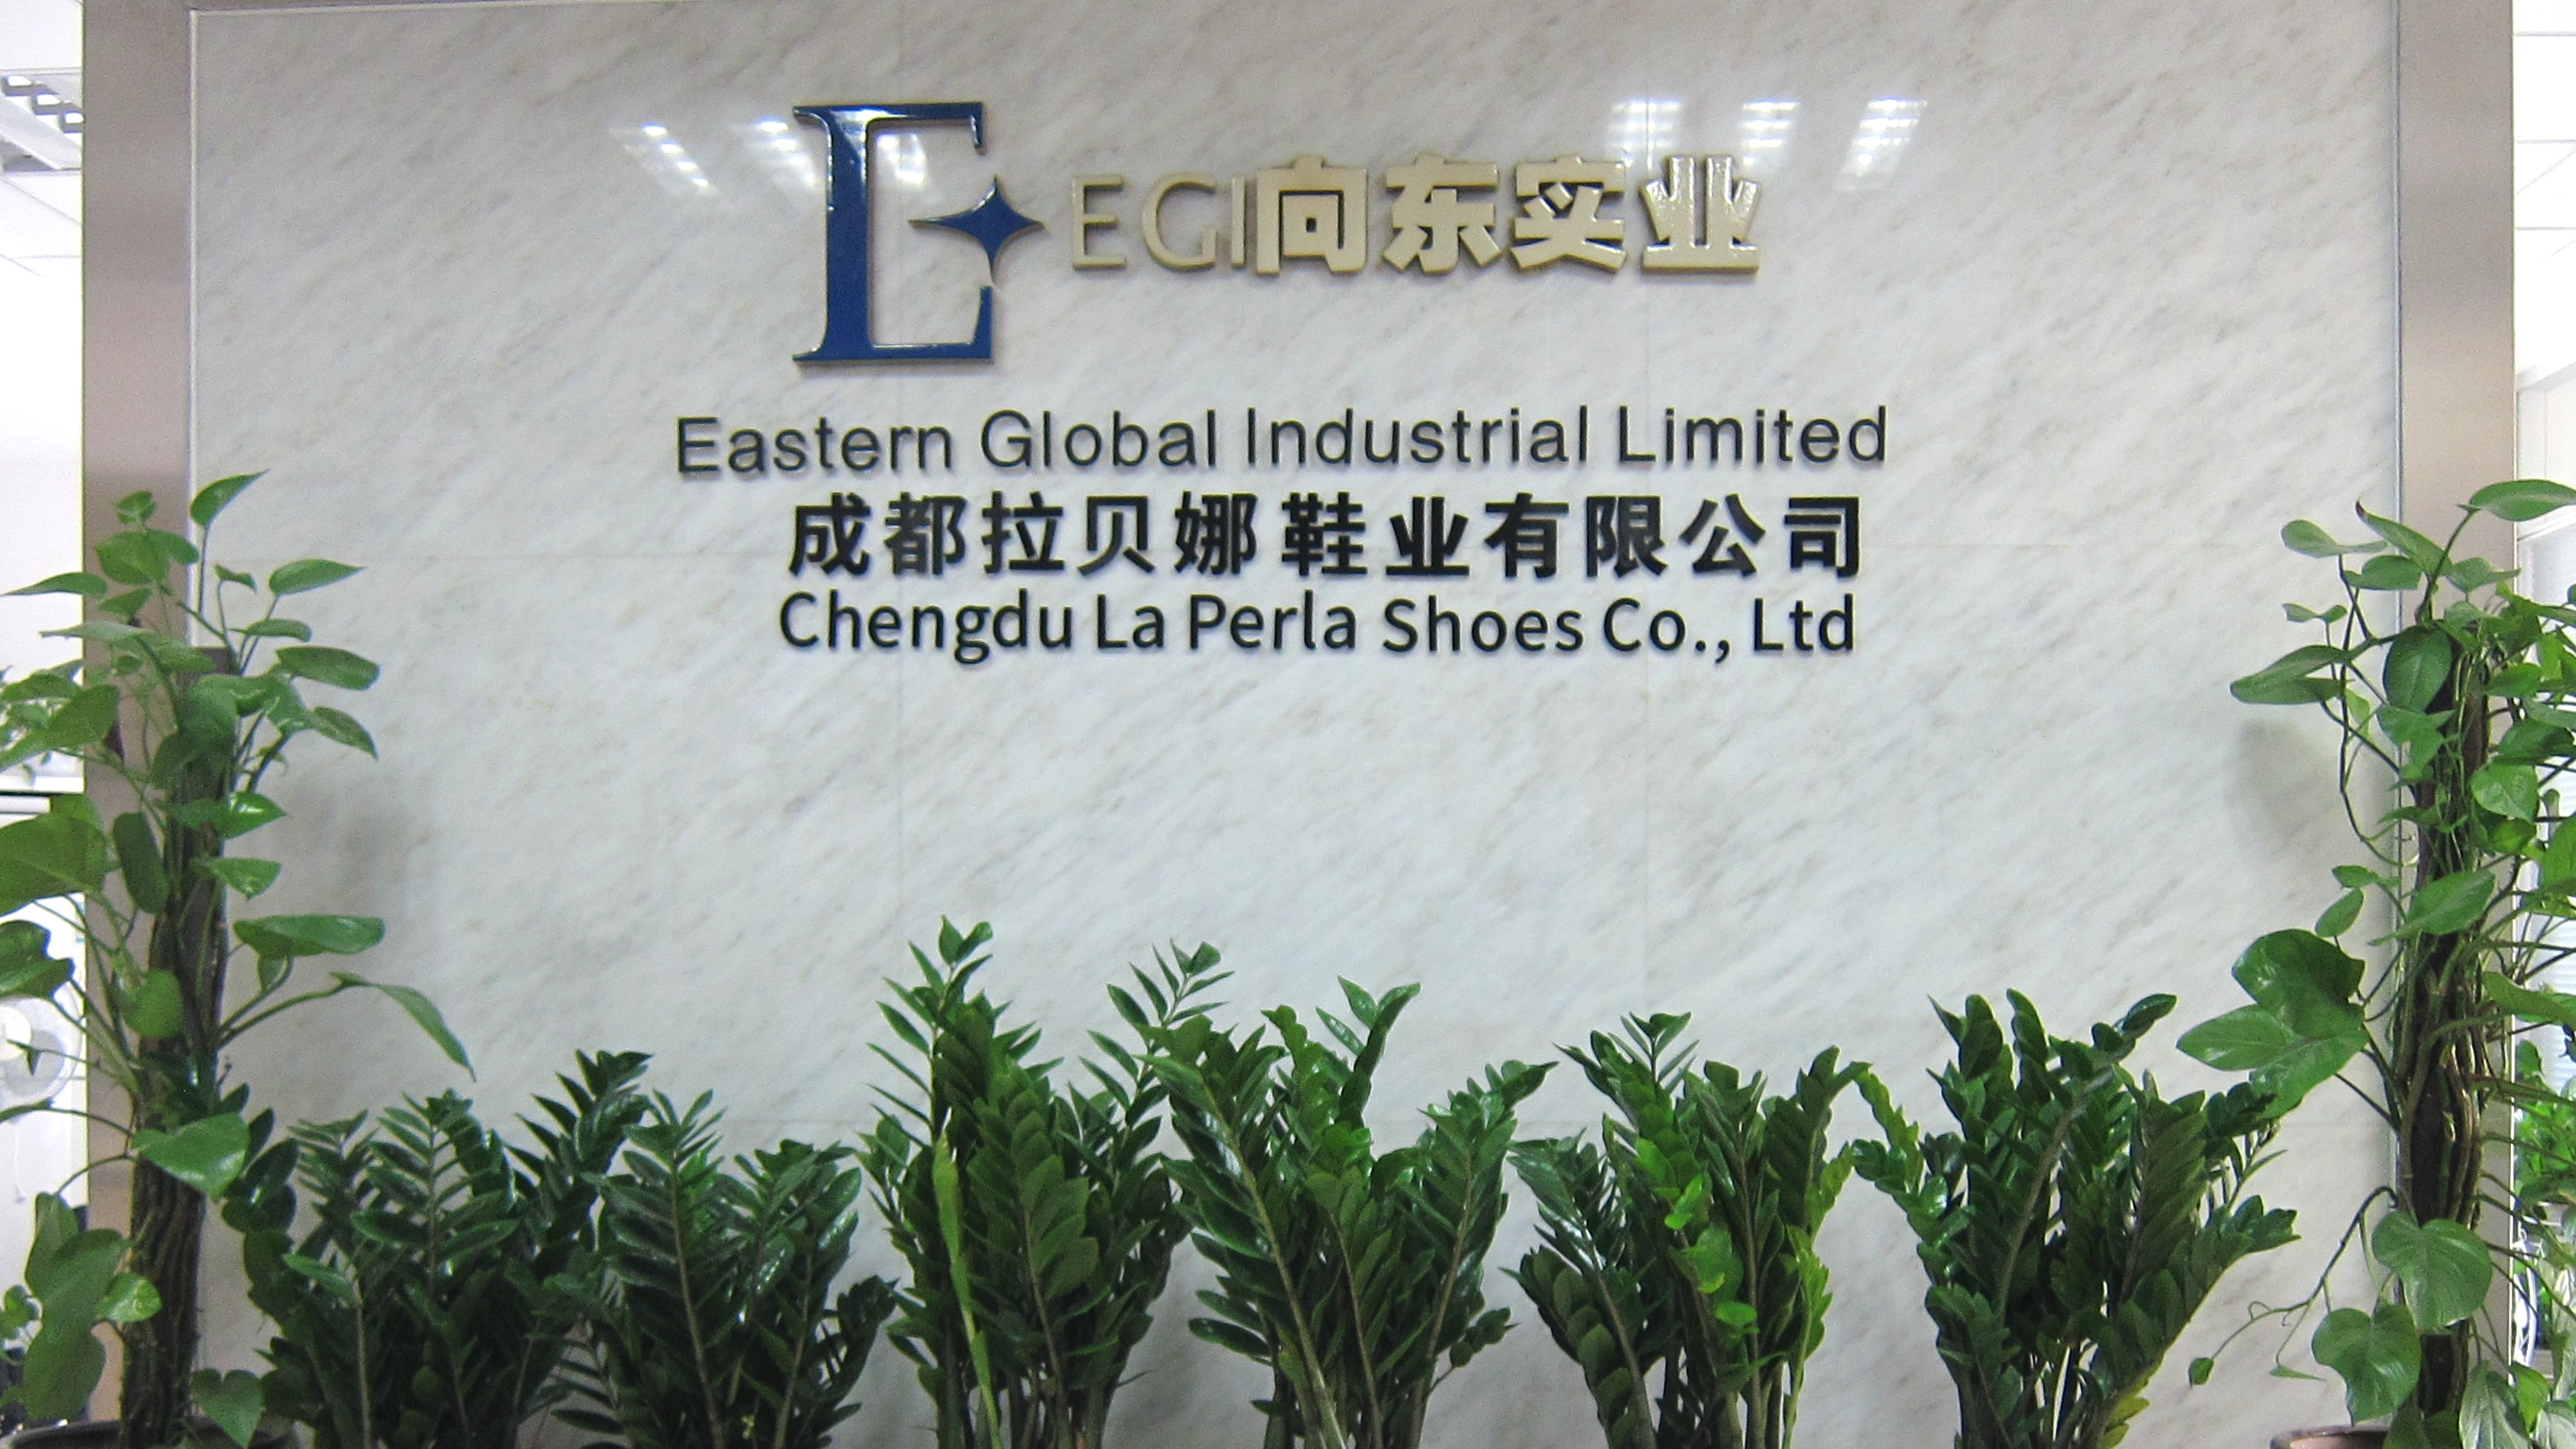 CHENGDU LA PERLA INTERNATIONAL TRADING COMPANY